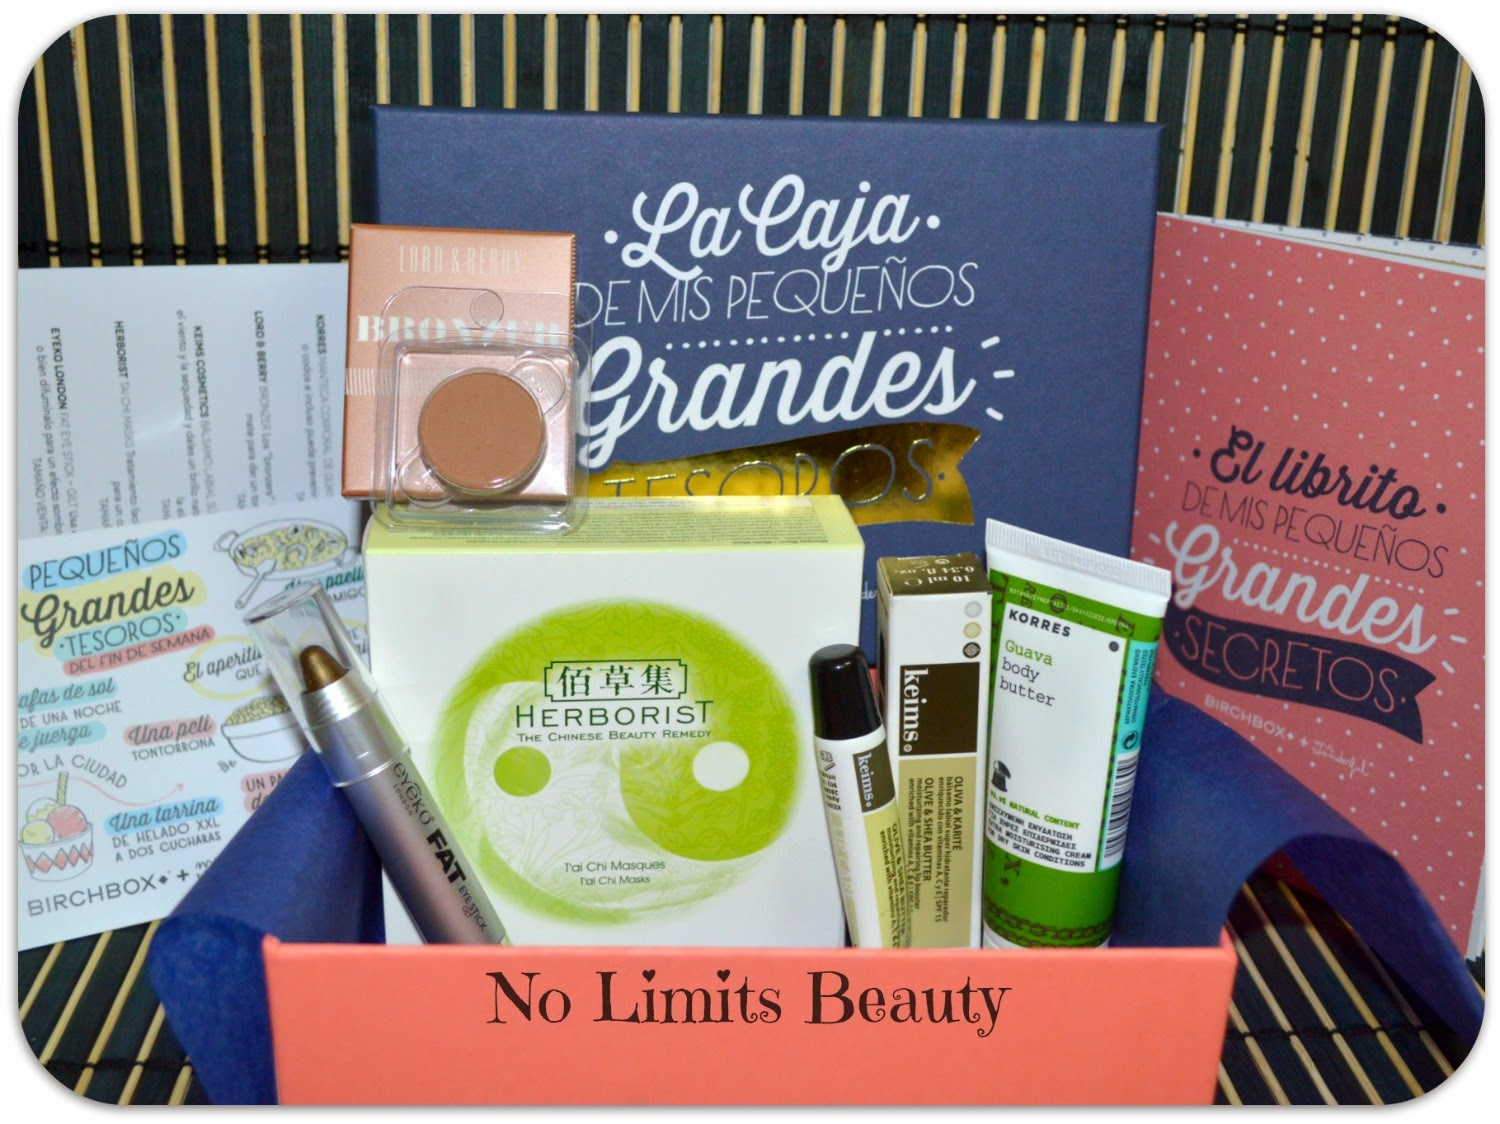 BirchBox Diciembre 2014: A wonderful time!